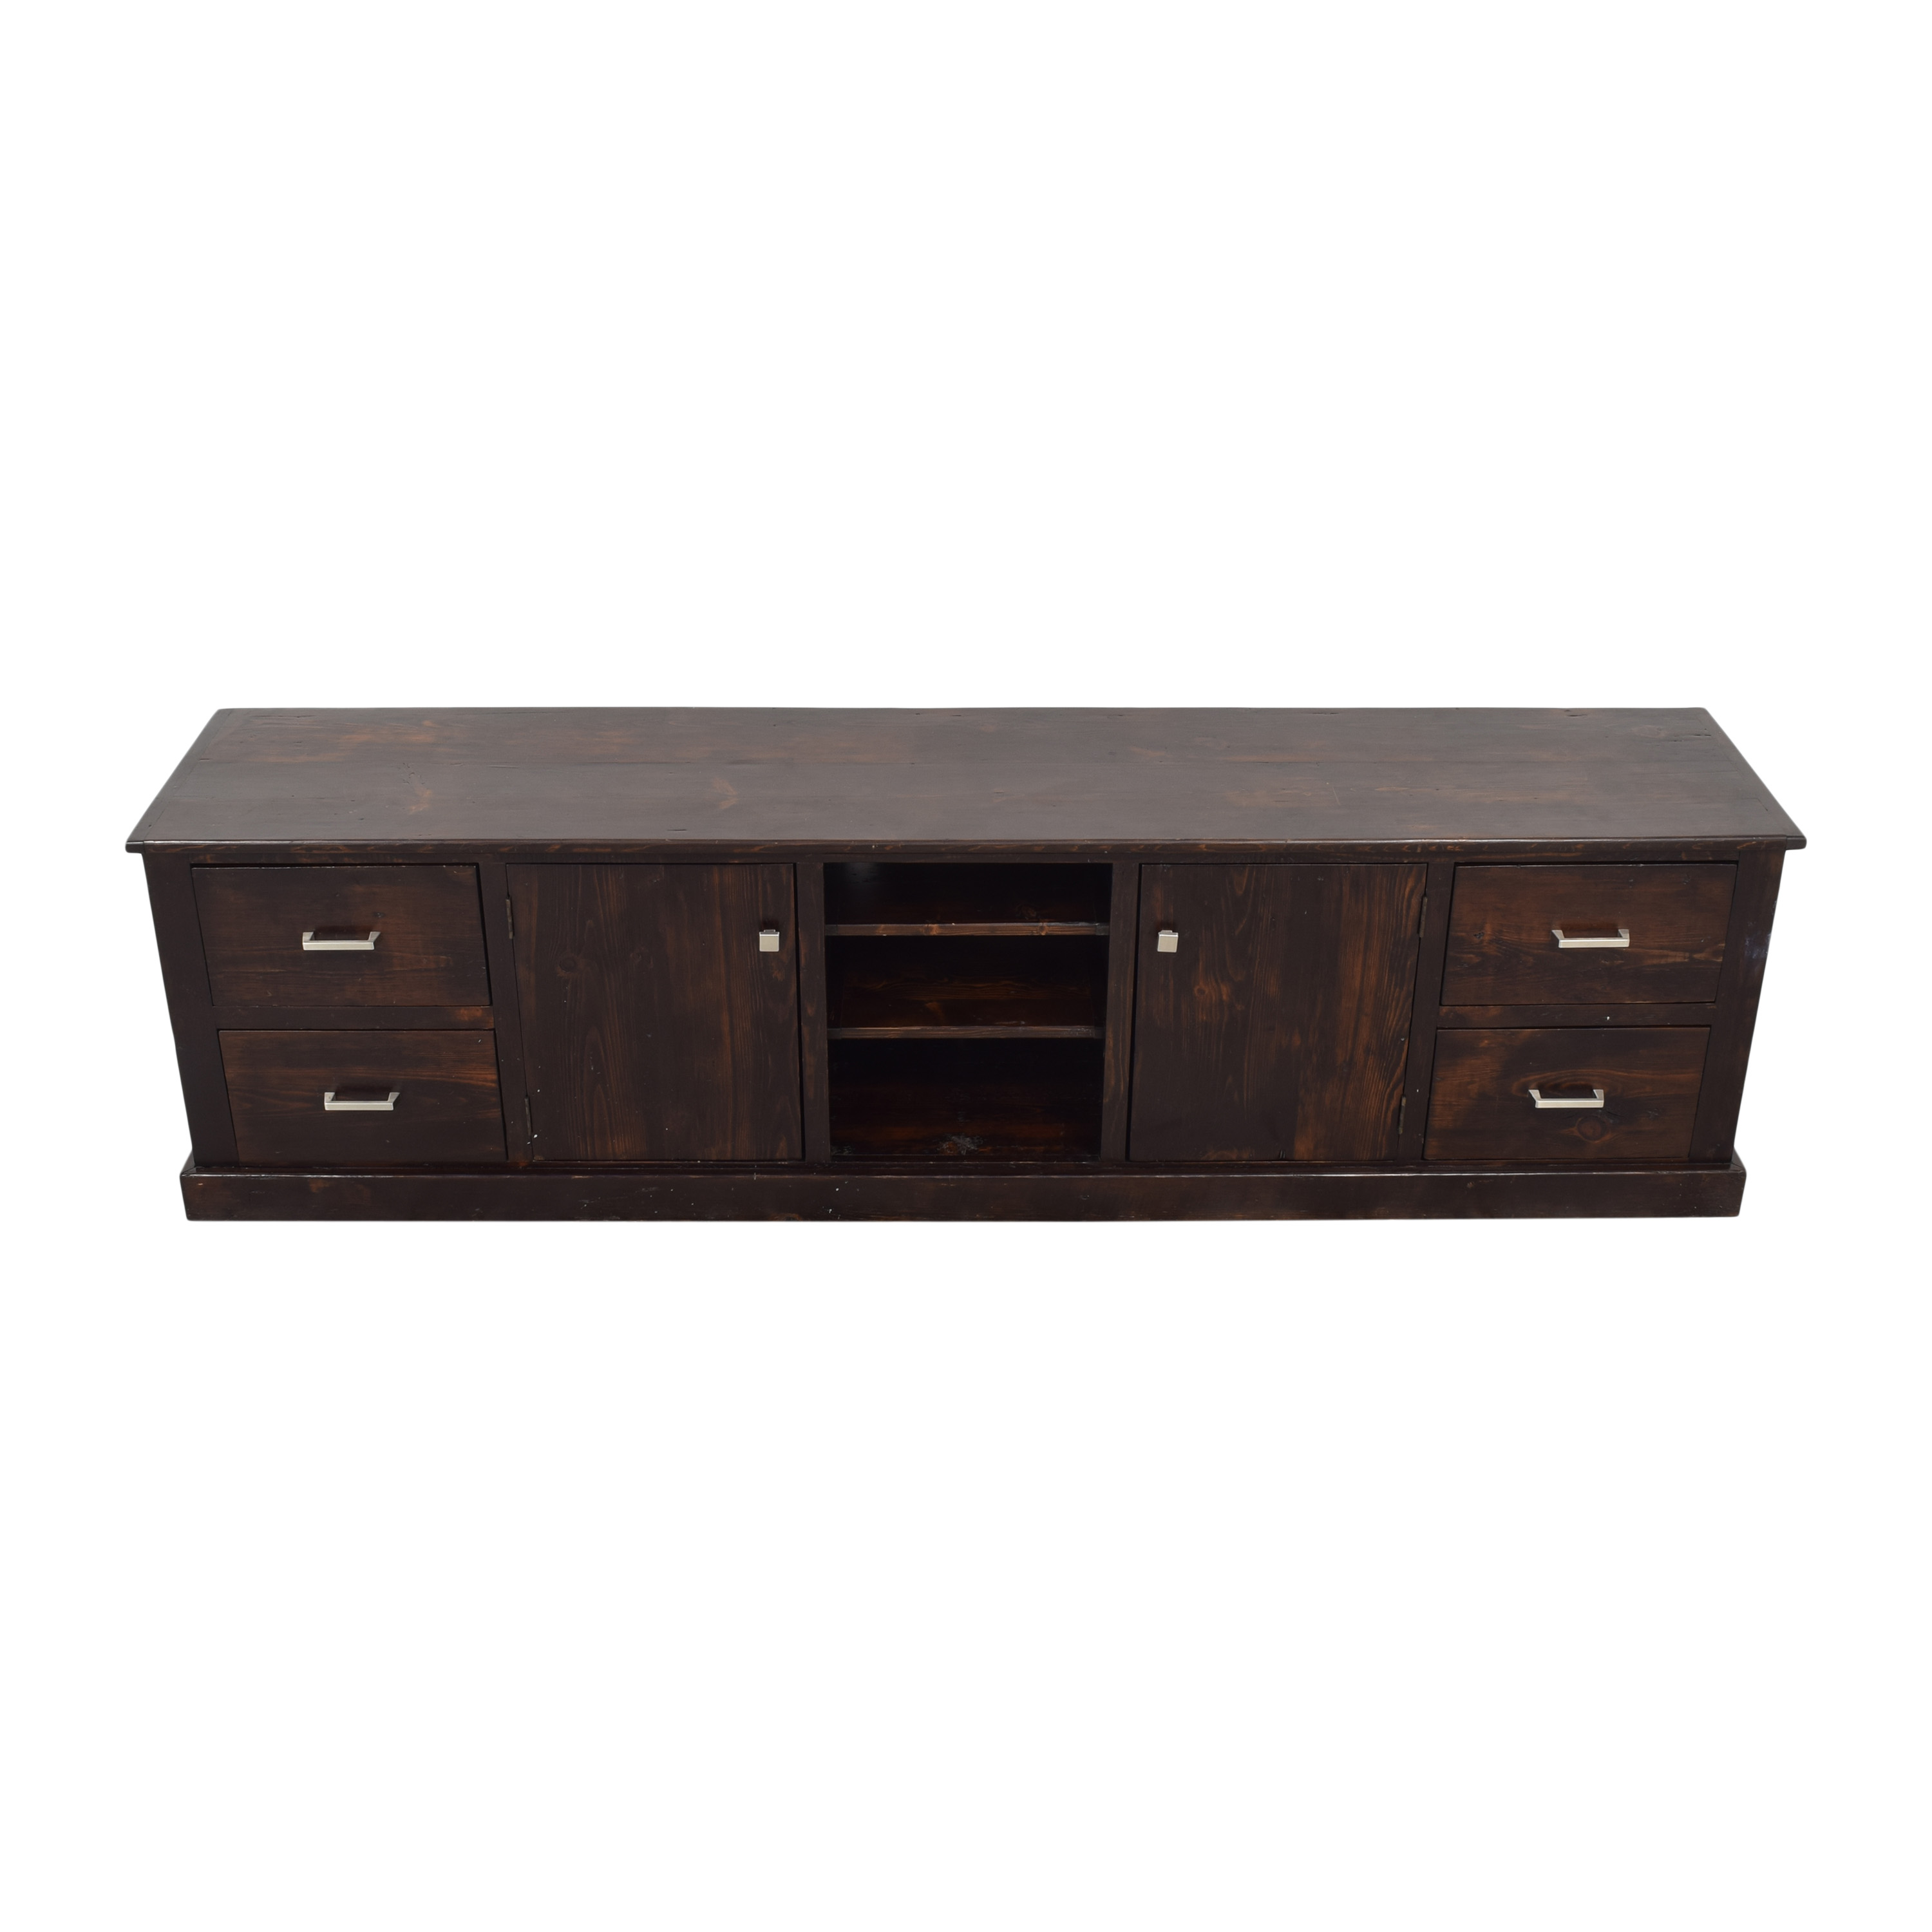 shop Furniture From the Barn Media Console Furniture From The Barn Media Units